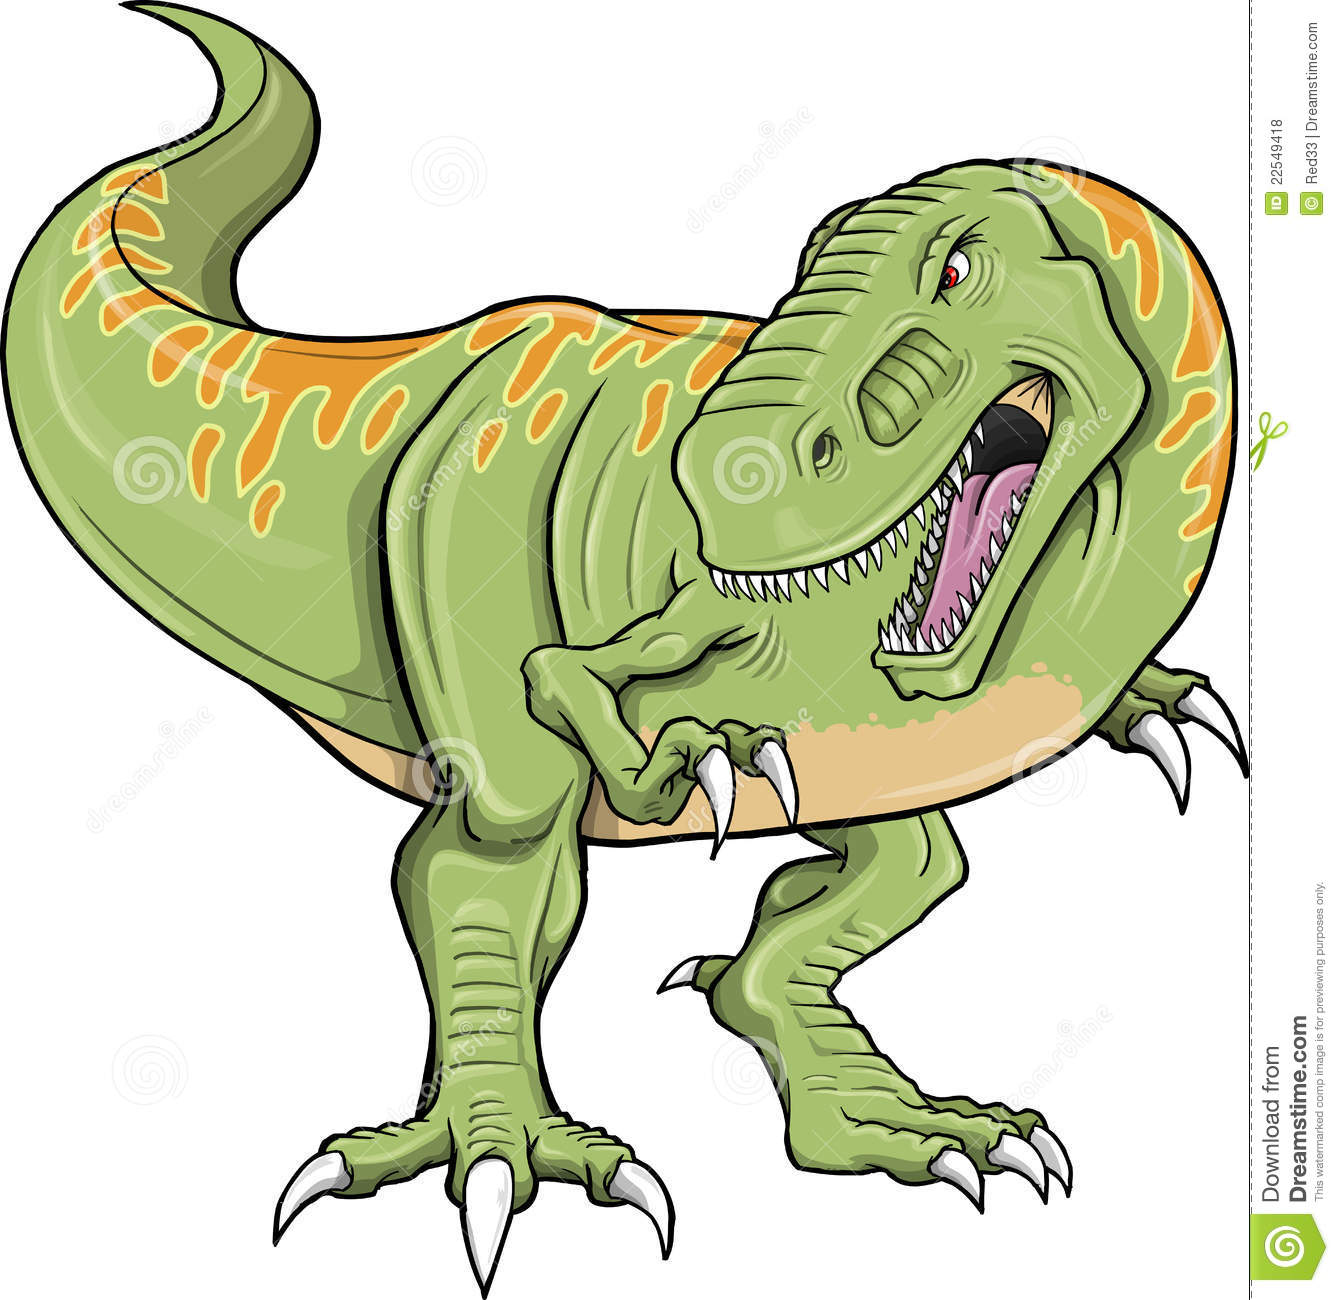 Tyrannosaurus Rex clipart #3, Download drawings